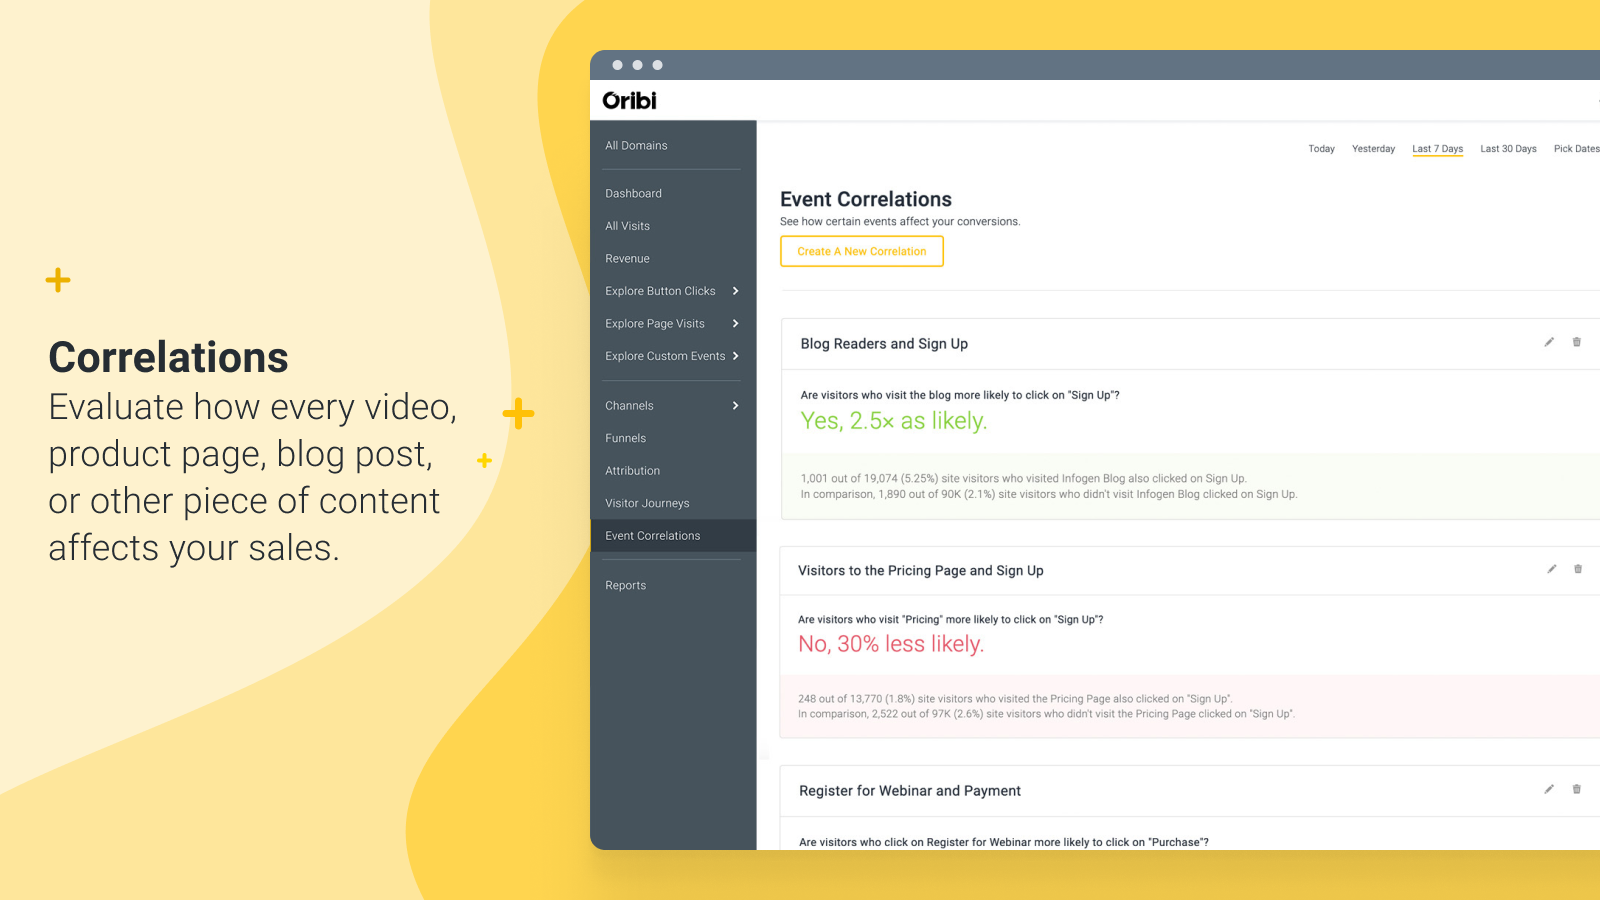 Evaluate how every video, product page, blog post affects your sales.